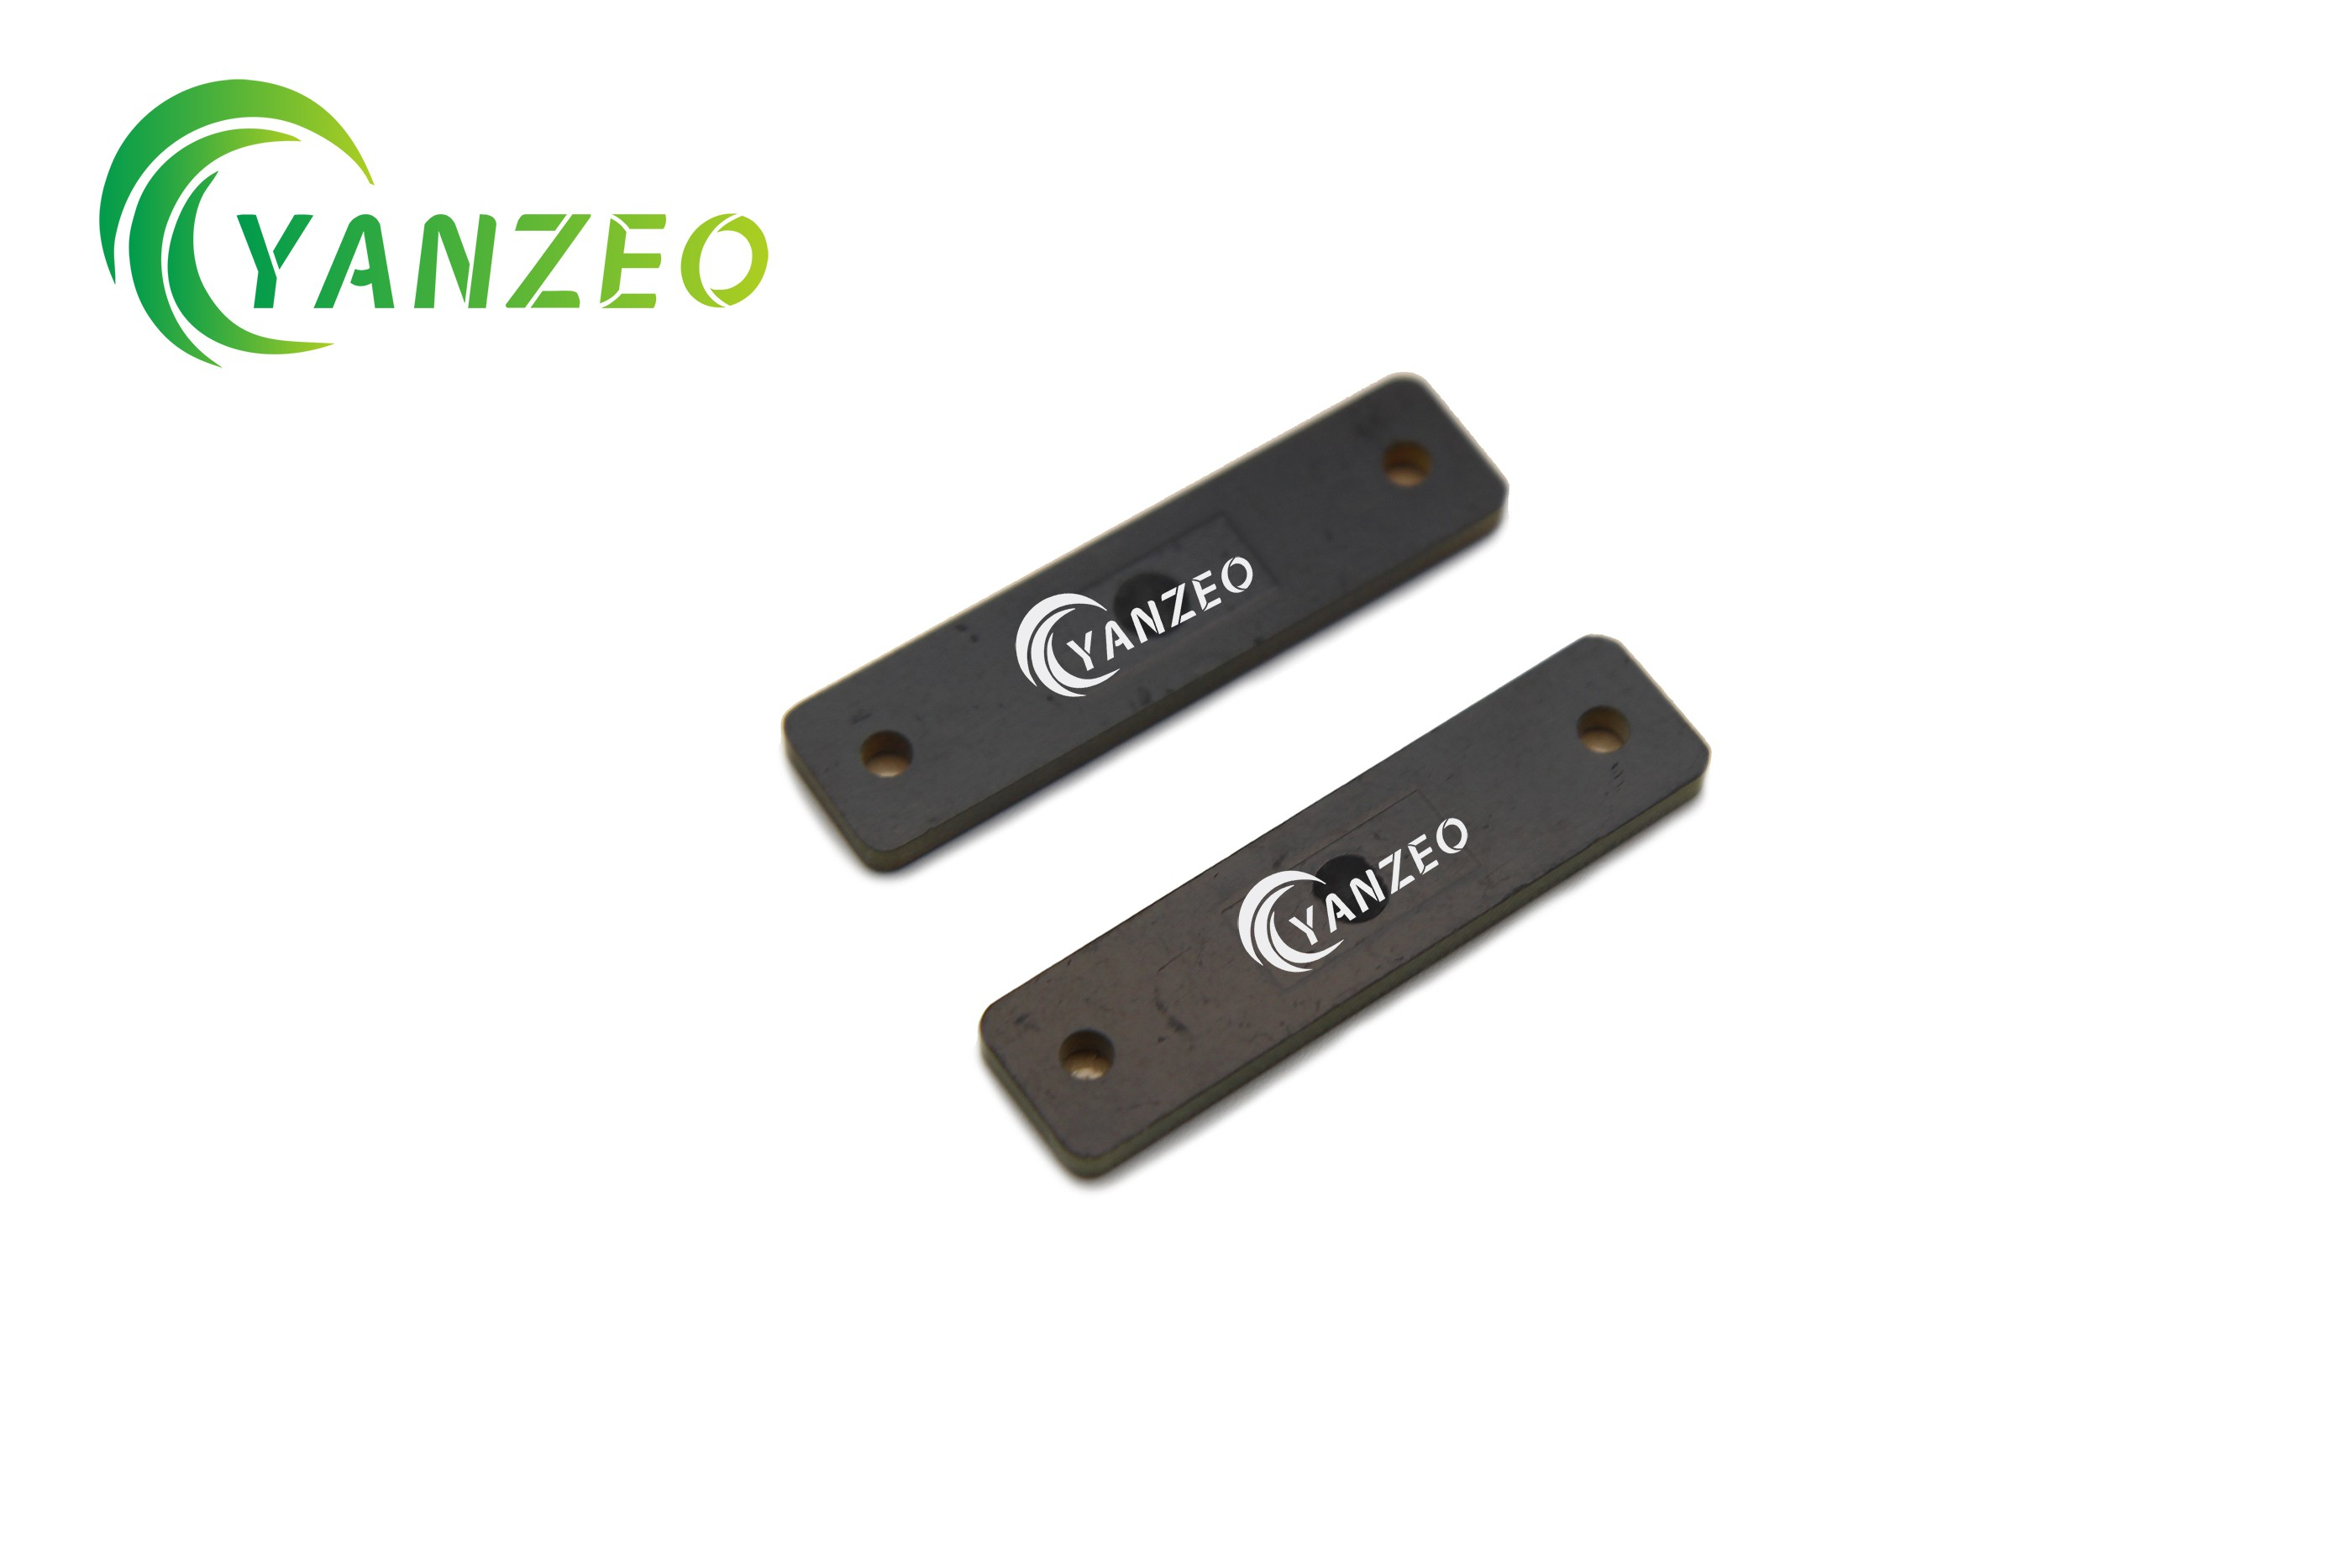 UHF ceramic tag 860-900Mhz high temperature SM3015 for metal management,inventory management, asset management